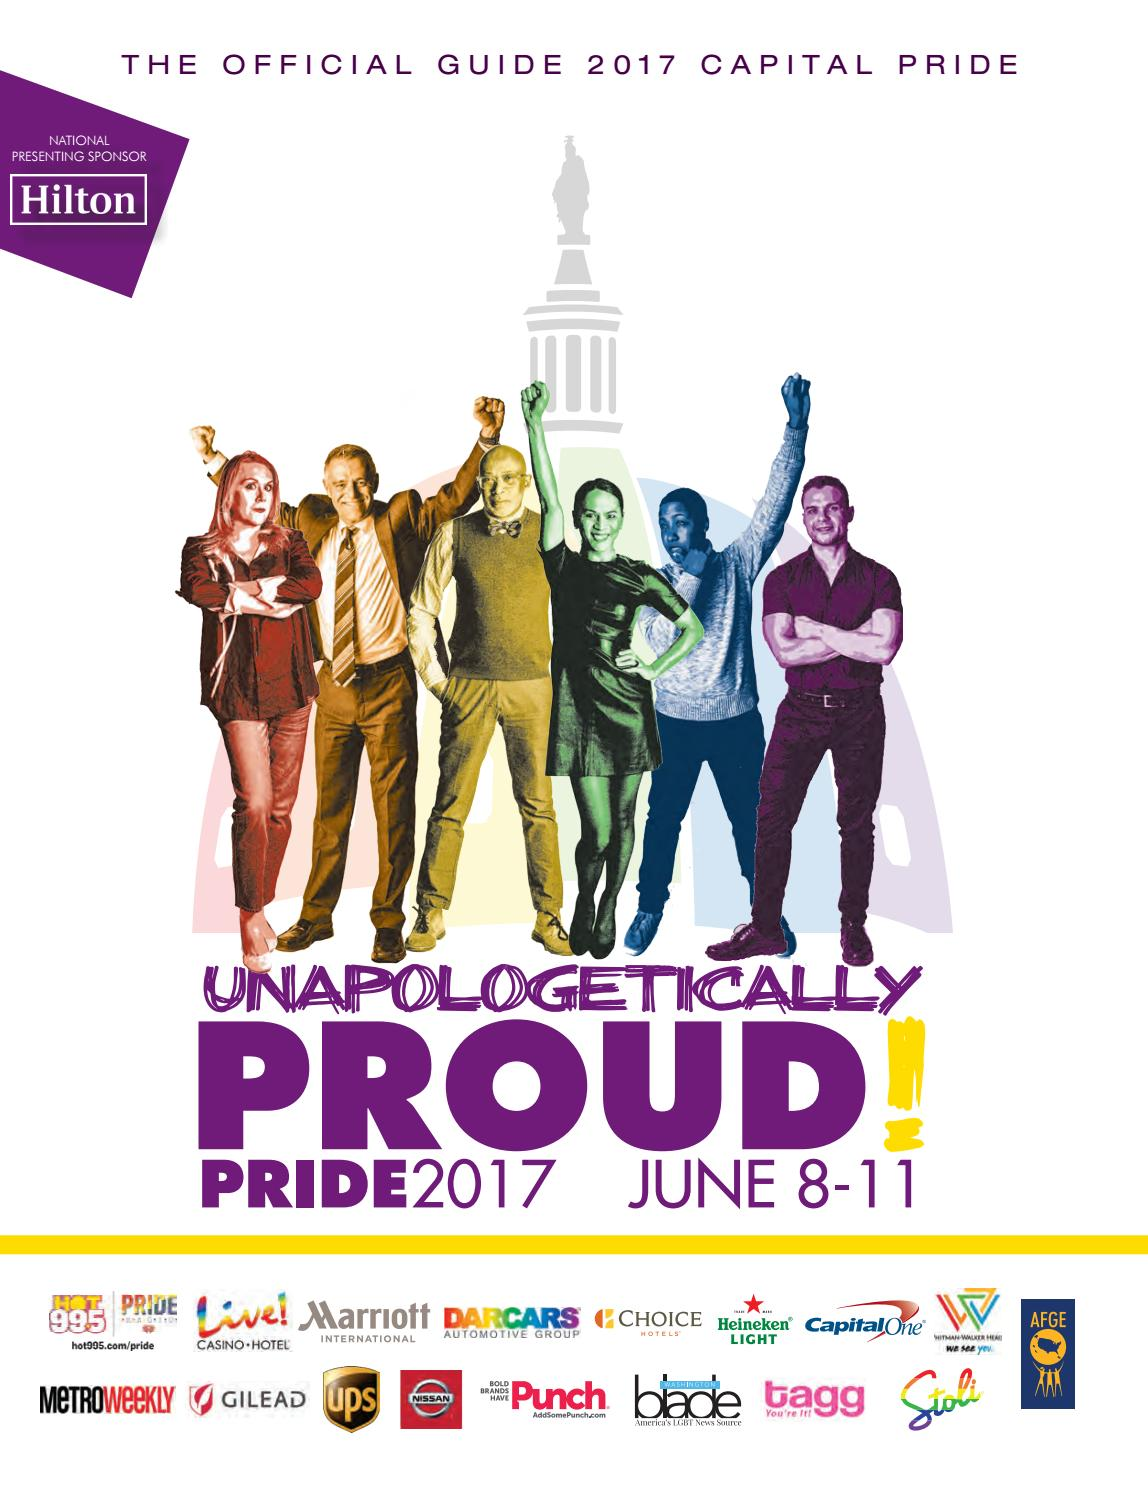 14ae85744 The Official Guide to Capital Pride 2017 by Capital Pride - issuu